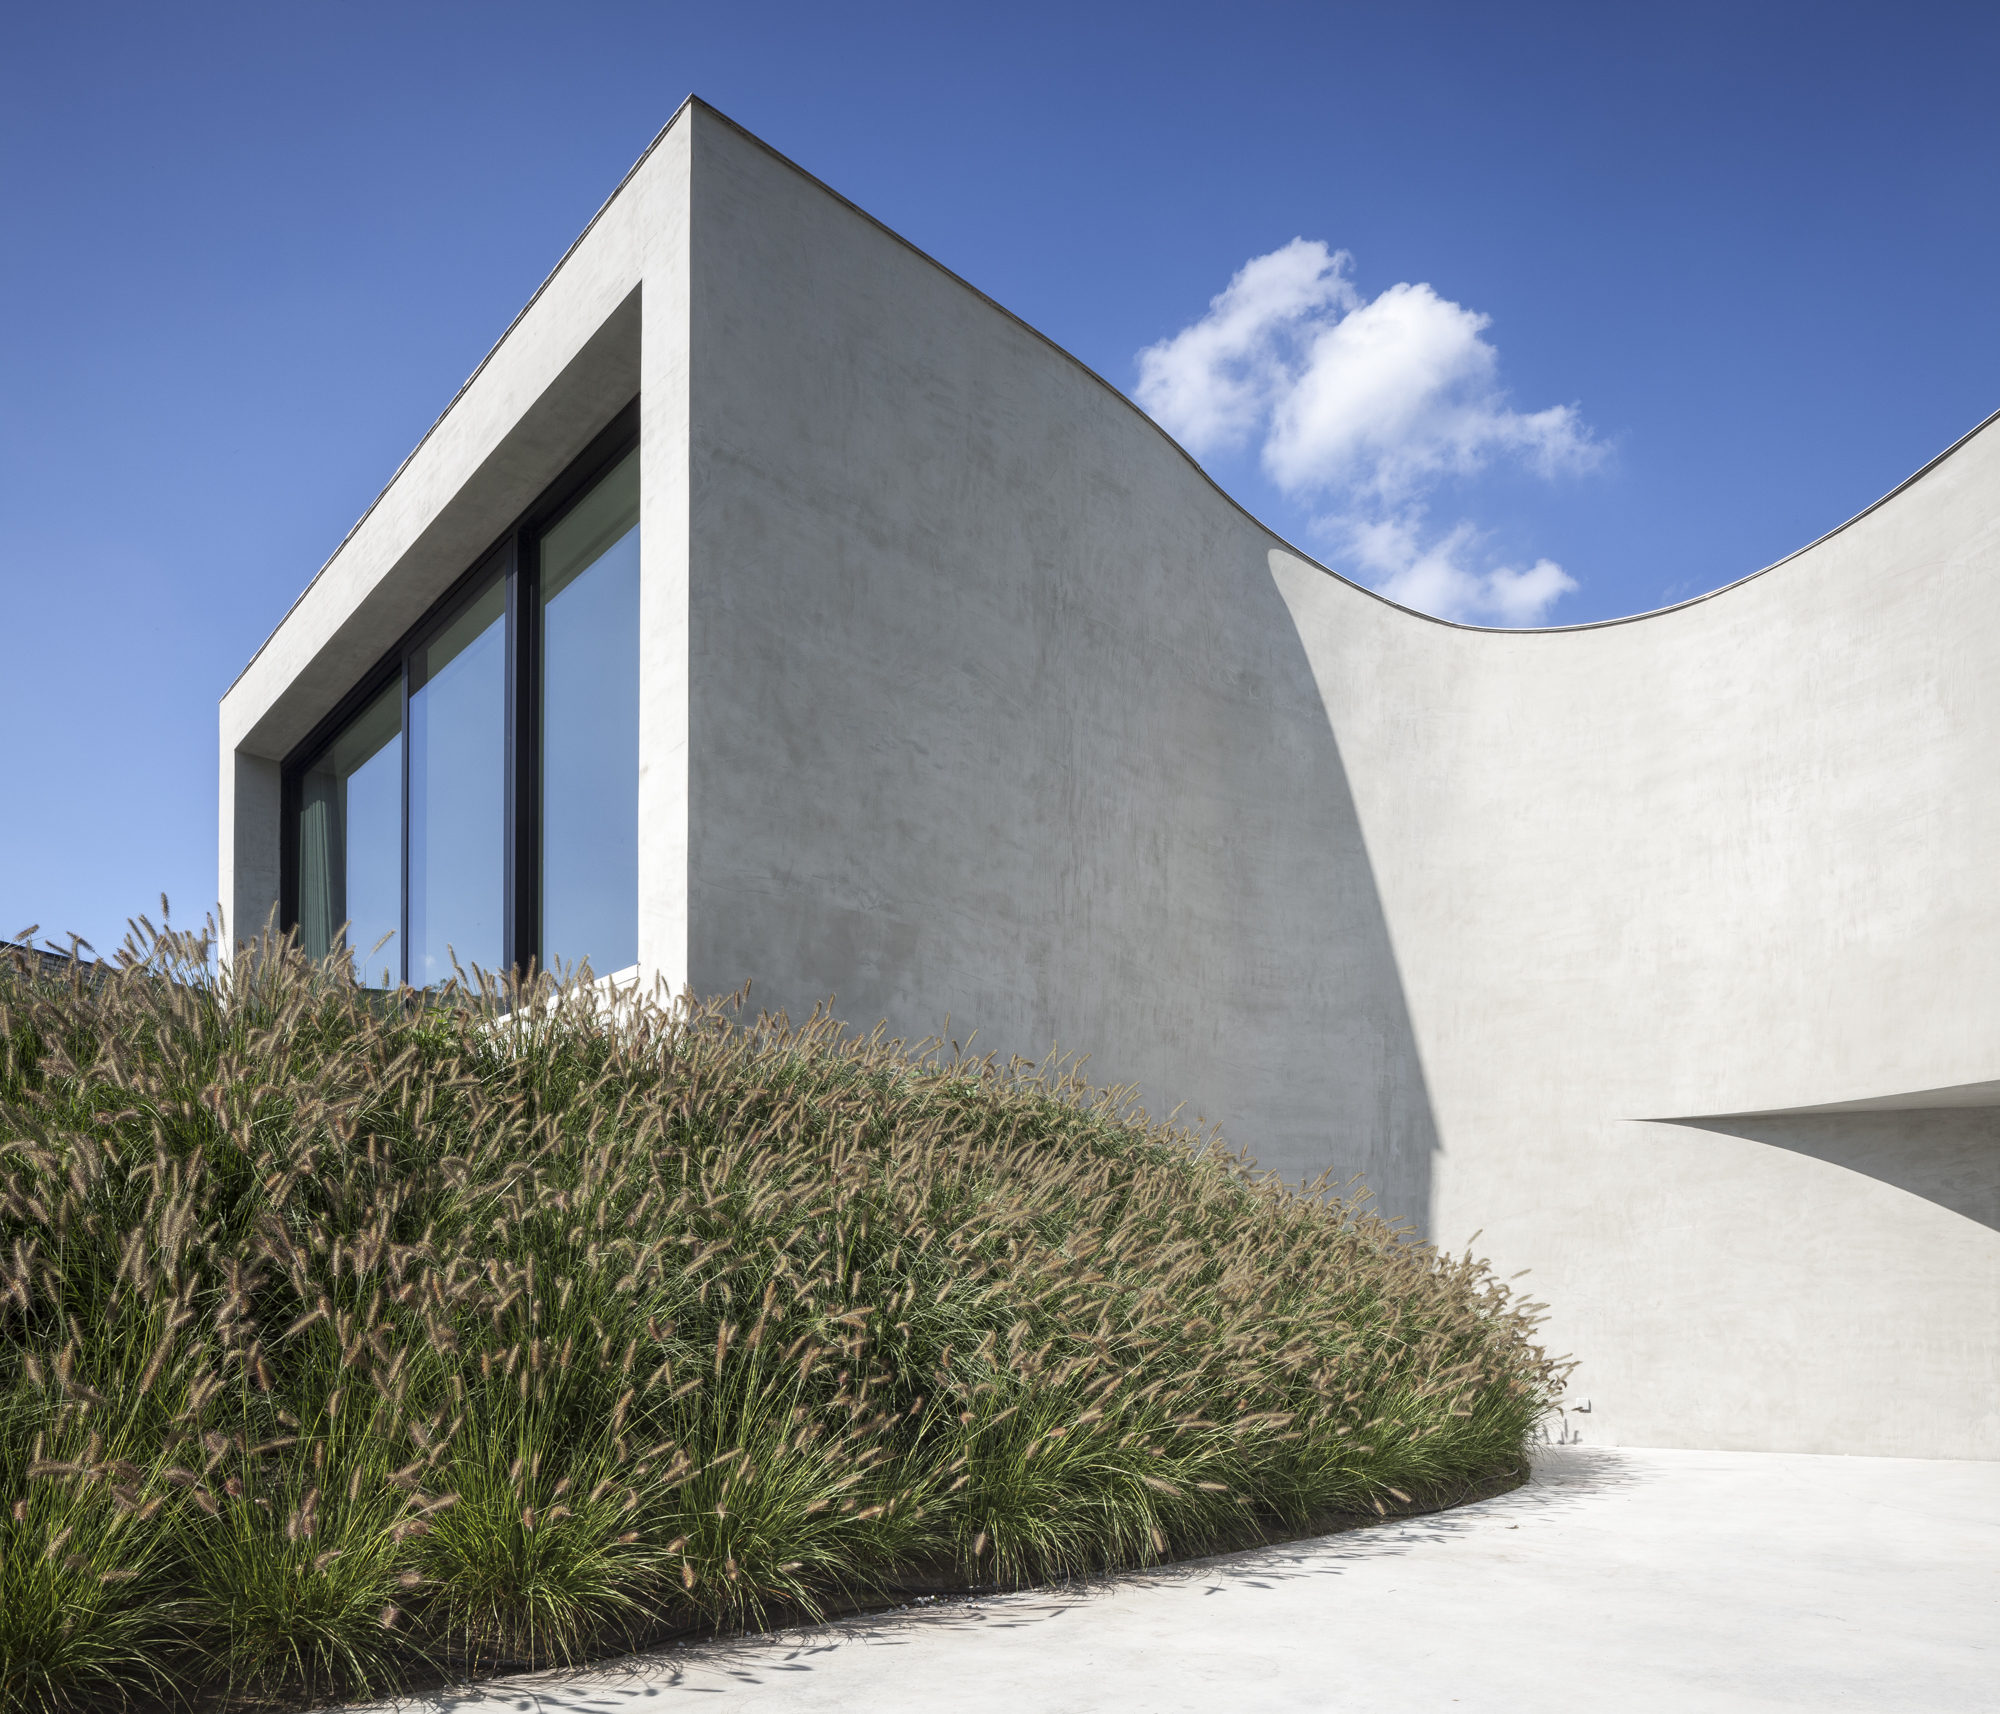 """Villa MQ , Tremelo Belgium   WINNER HÄUSER AWARDS 2017 - Spectacular Houses    """"On the outside, it captures modern art's essential look with its beautiful swirl of clean concrete. Its shape pulls you in and mesmerizes as it cuts through the sky smoothly. It appears to be sitting on its own pedestal, but in reality the building has many split-levels that cut into the ground. Aesthetically it resembles a monument to family life.""""  cfr. I love Belgium"""